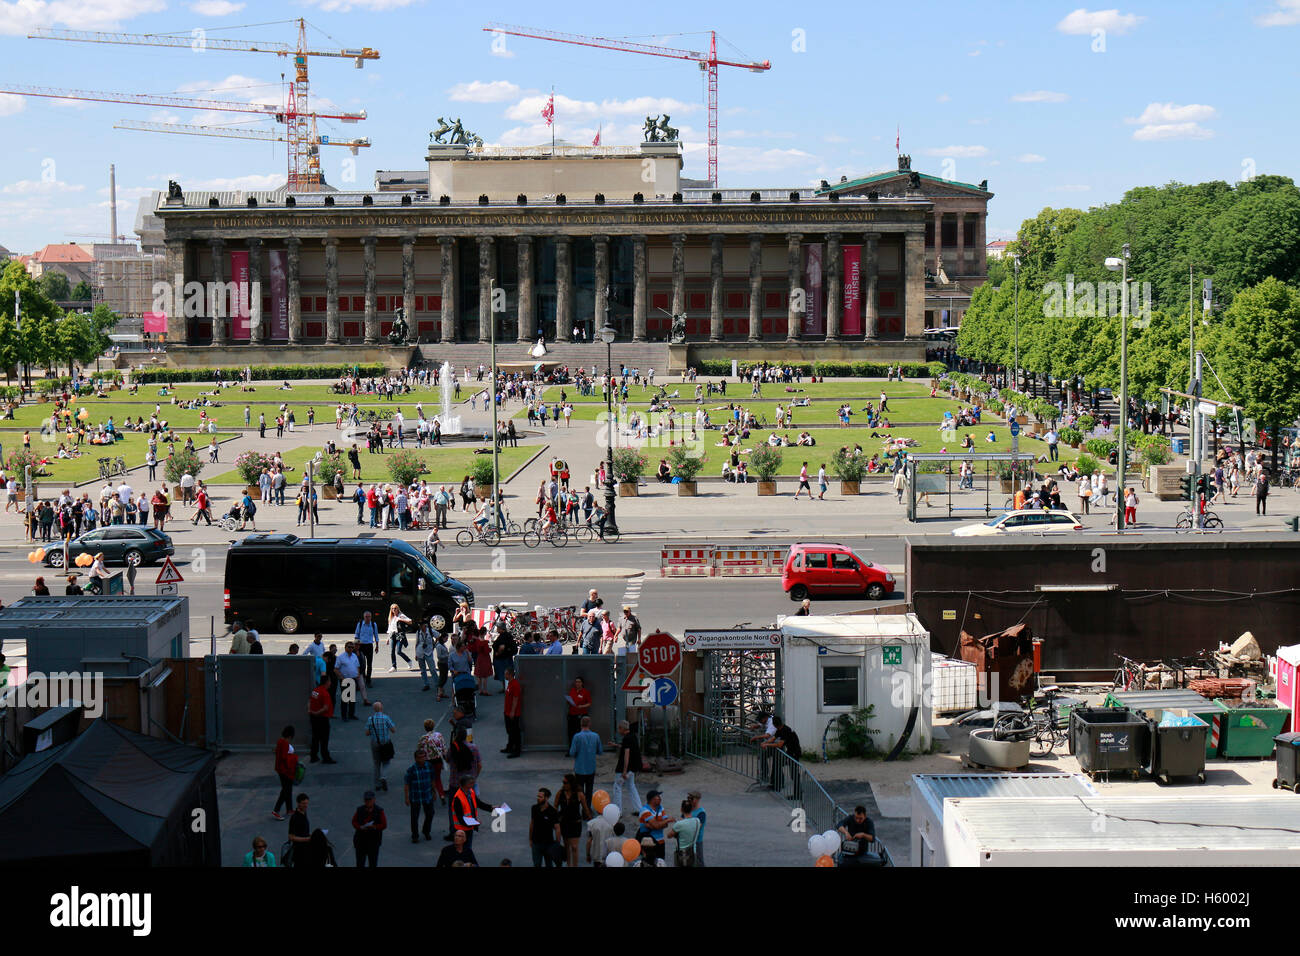 Altes Museum, Berlin-Mitte. - Stock Image